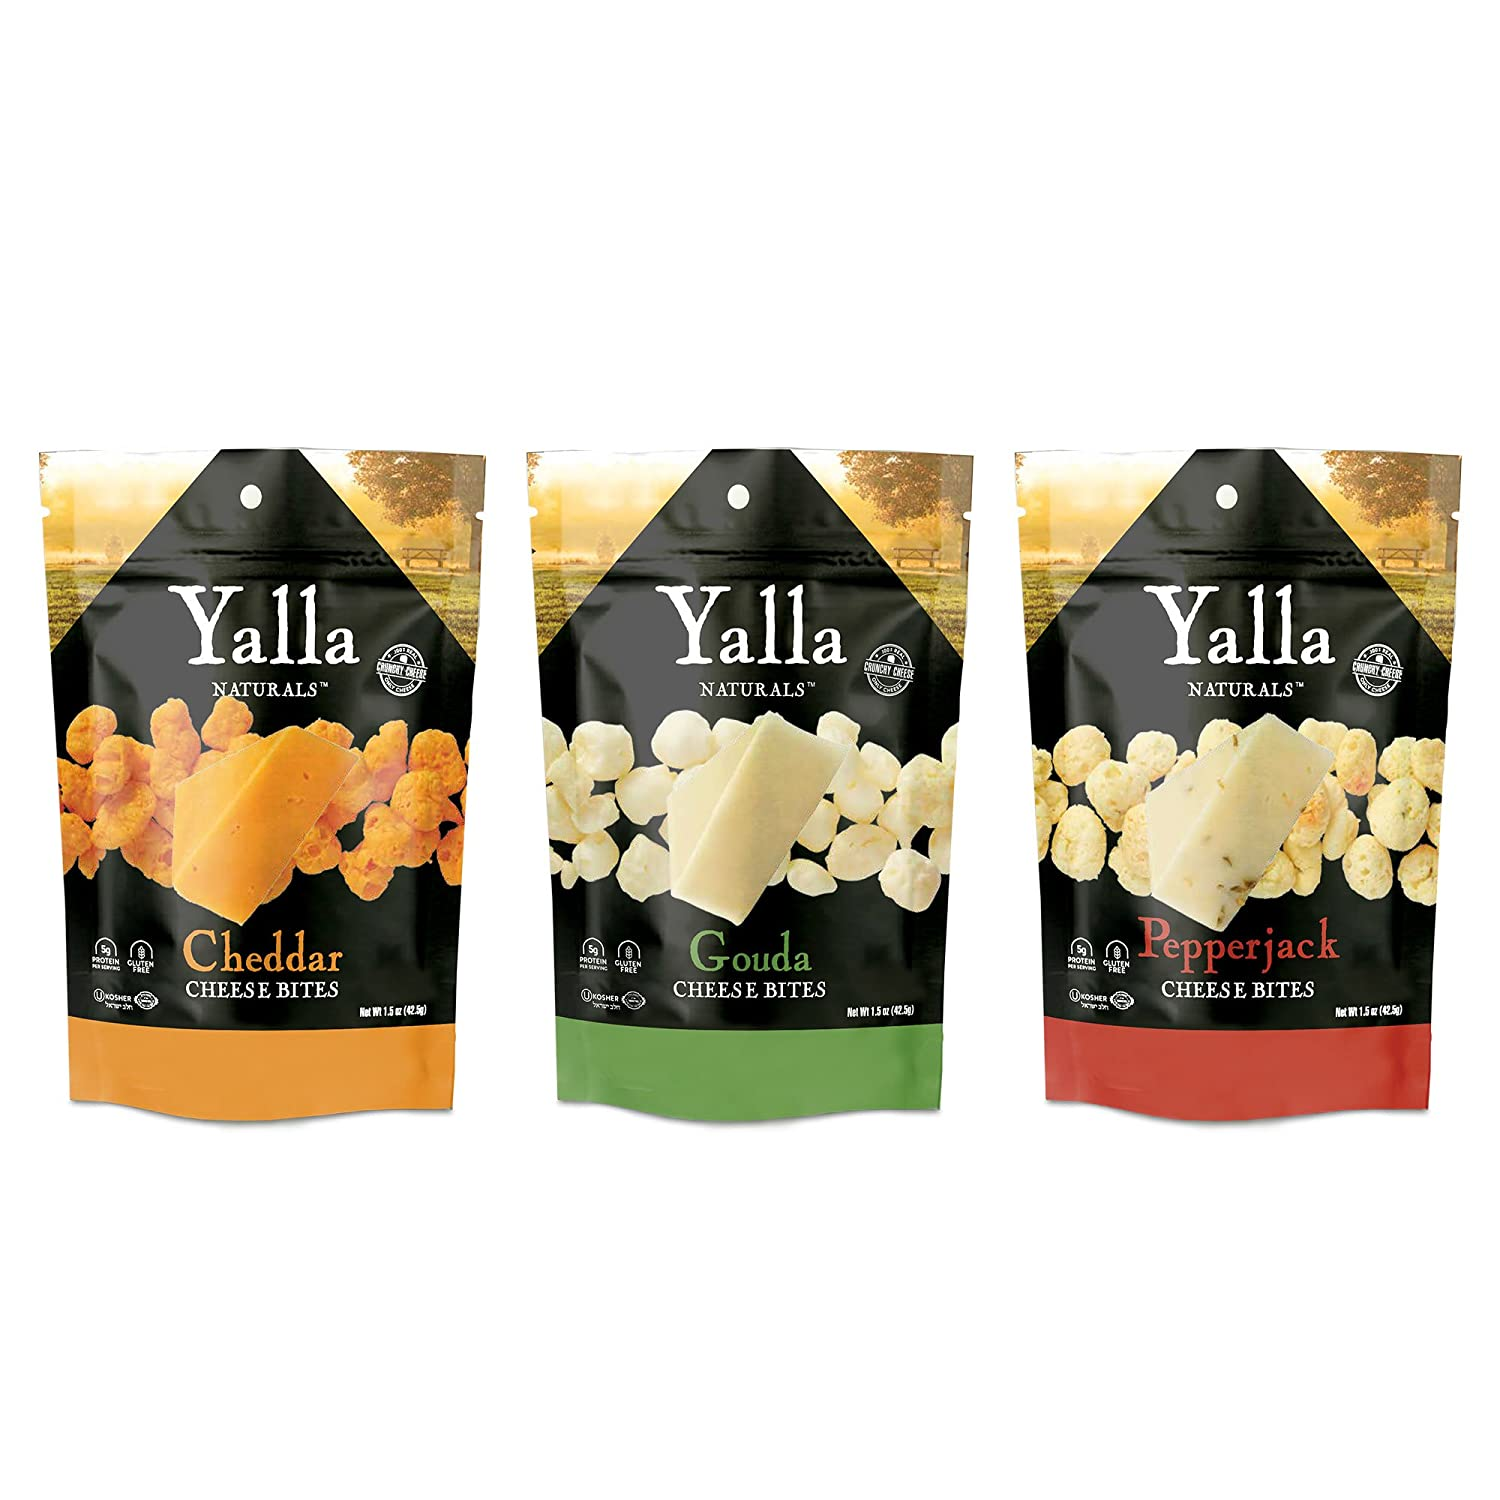 Crunchy Bites Cheese Snacks 3 Pack - Cheddar, Gouda and Pepper Jack - 100% Cheese - High Protein and Calcium, Gluten Free, No-Low Carb, Kosher - 1.5oz - by Yalla Naturals